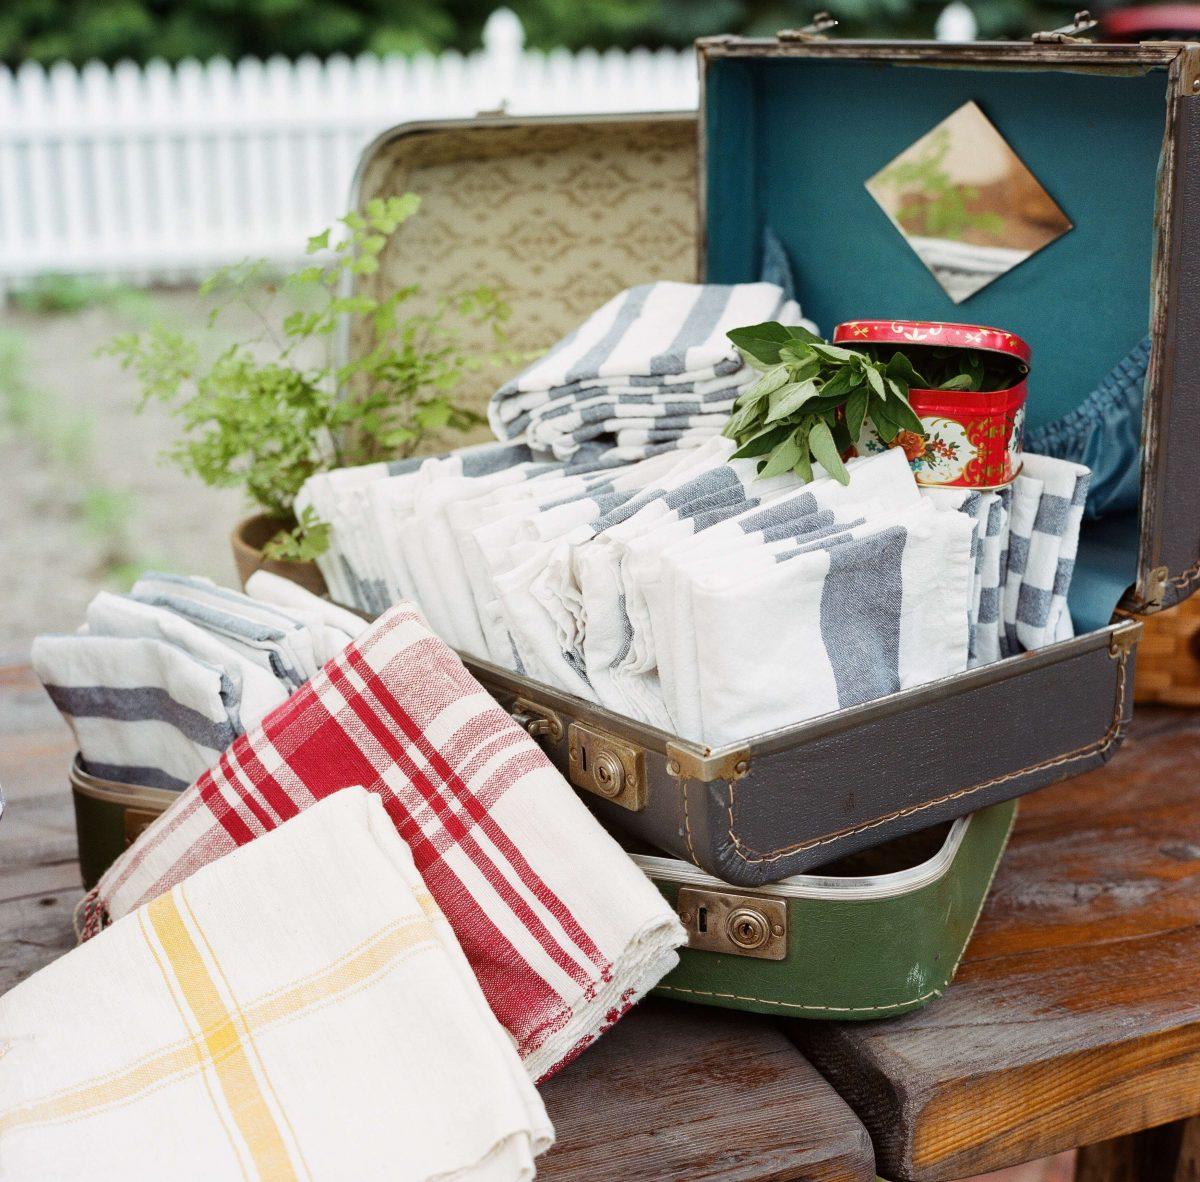 Shop Upstate NY Wedding Stephanie Karvellas Picnic Details